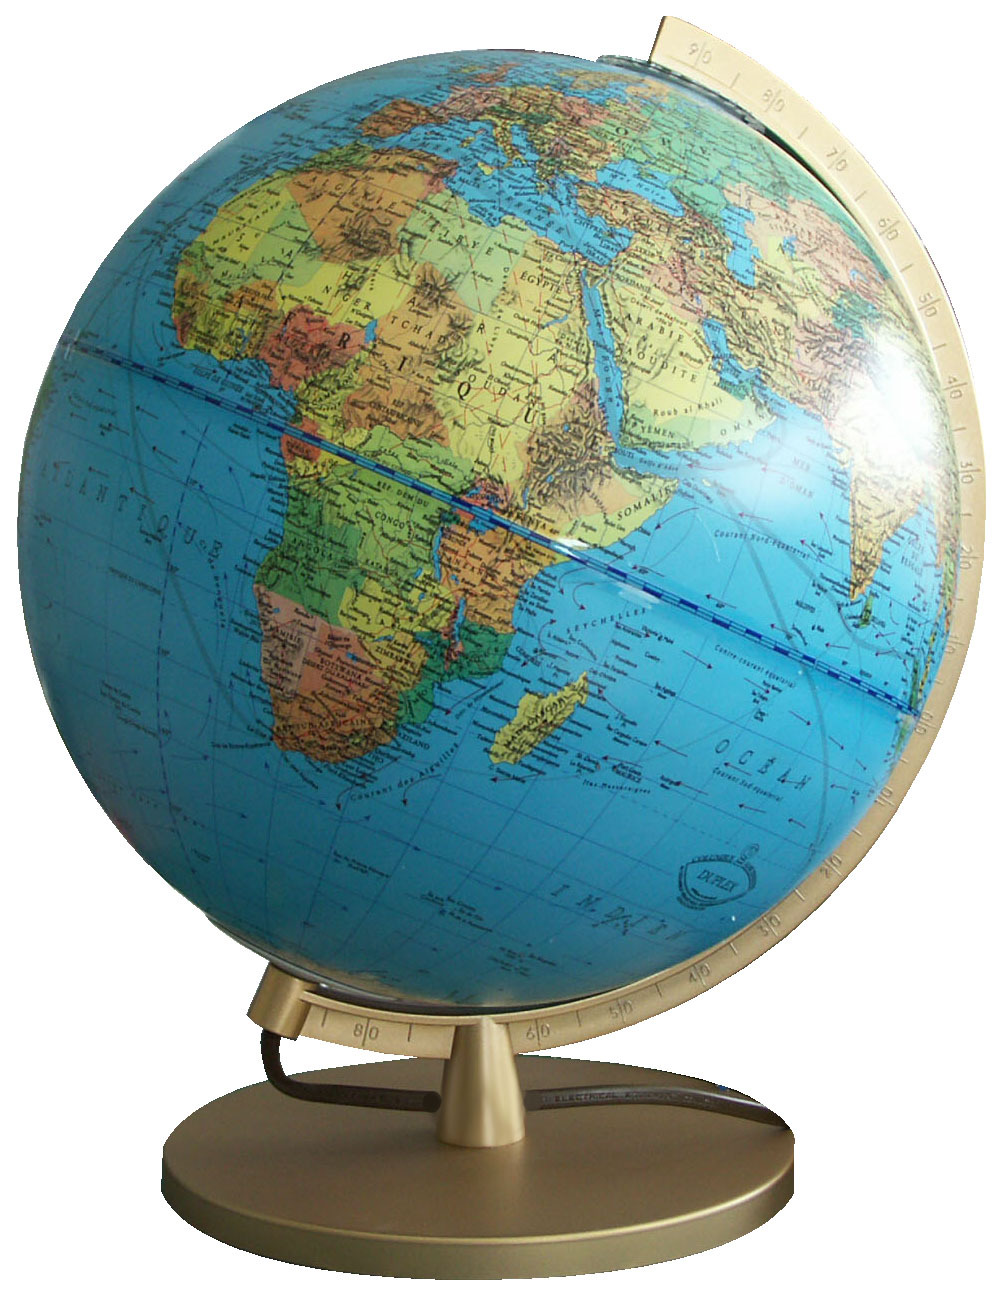 *26 CM IMPERIAL ILLUMINATED GLOBE